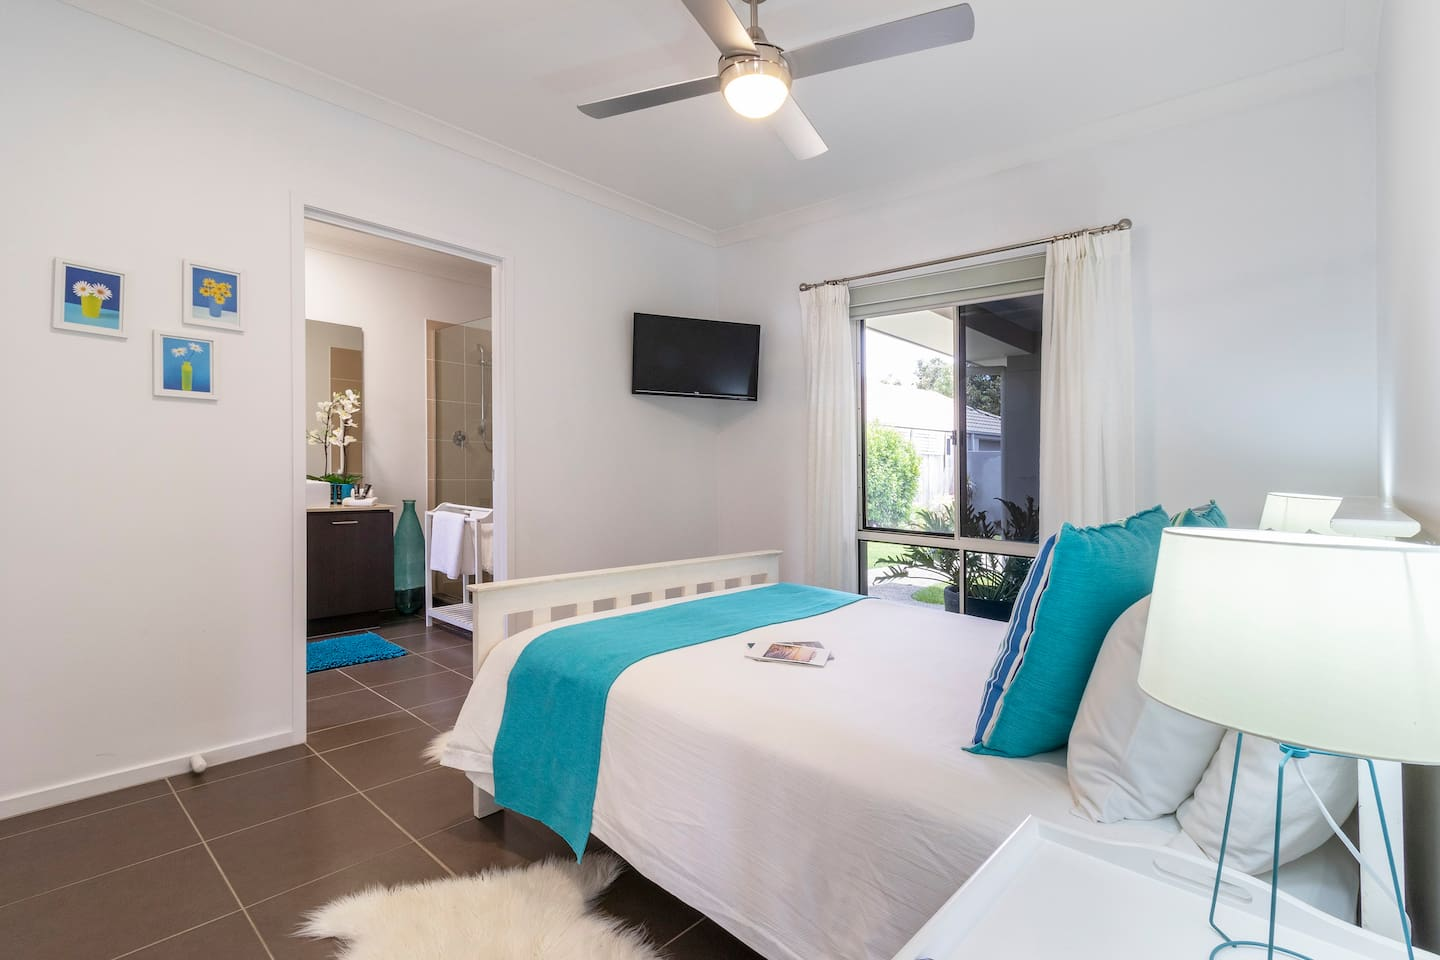 The light and airy double bedroom leads into a large, private en-suite  bathroom. The room has a wall mounted TV for your viewing pleasure.